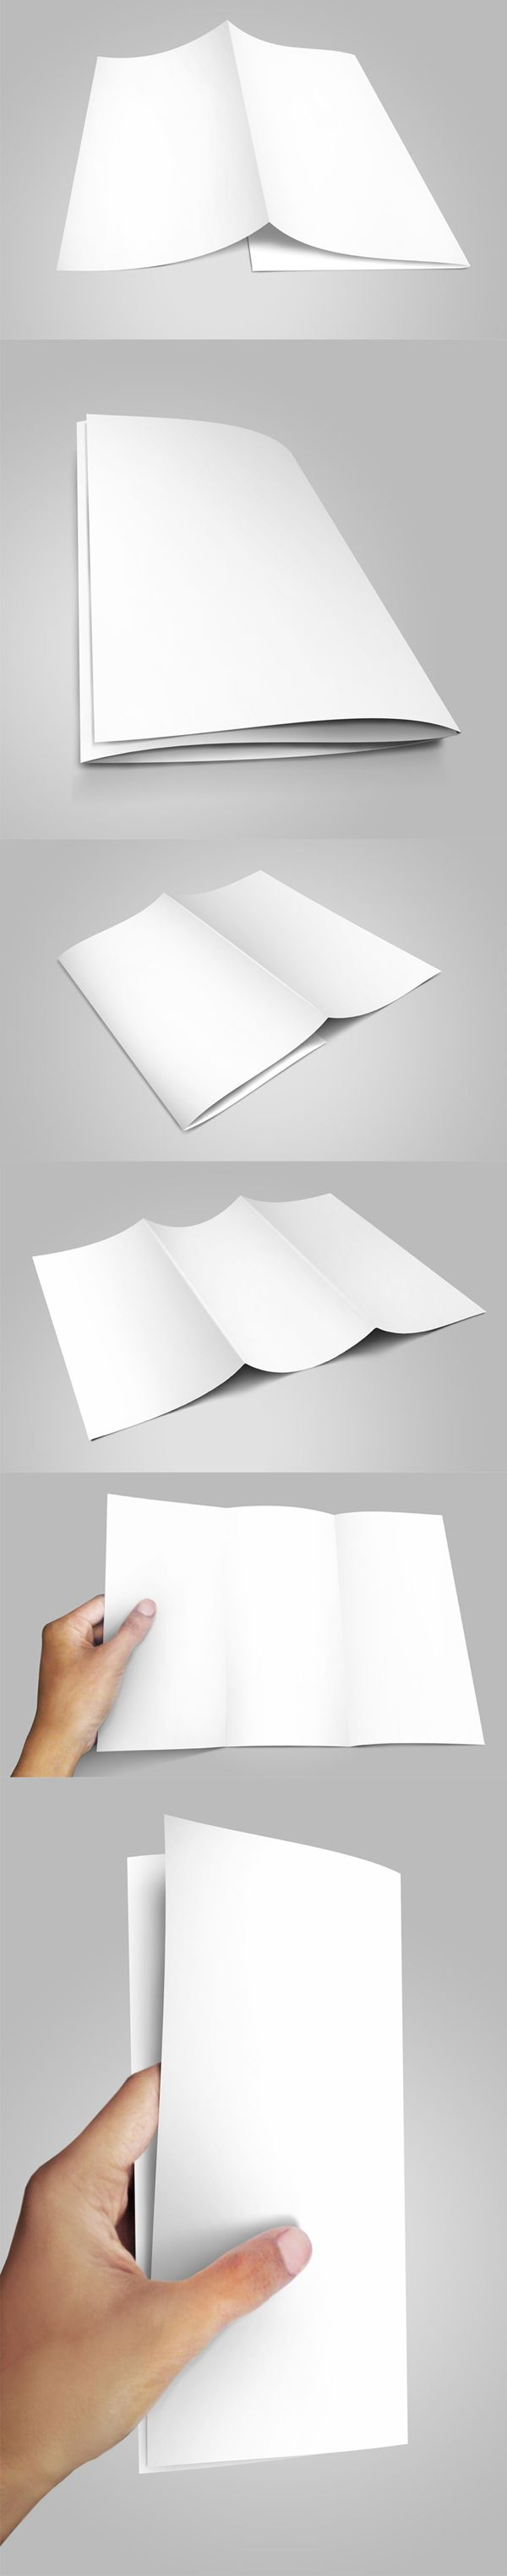 Free Trifold Brochure Mockup #freepsdfiles #freepsdgraphics #freepsdmockups #freebies